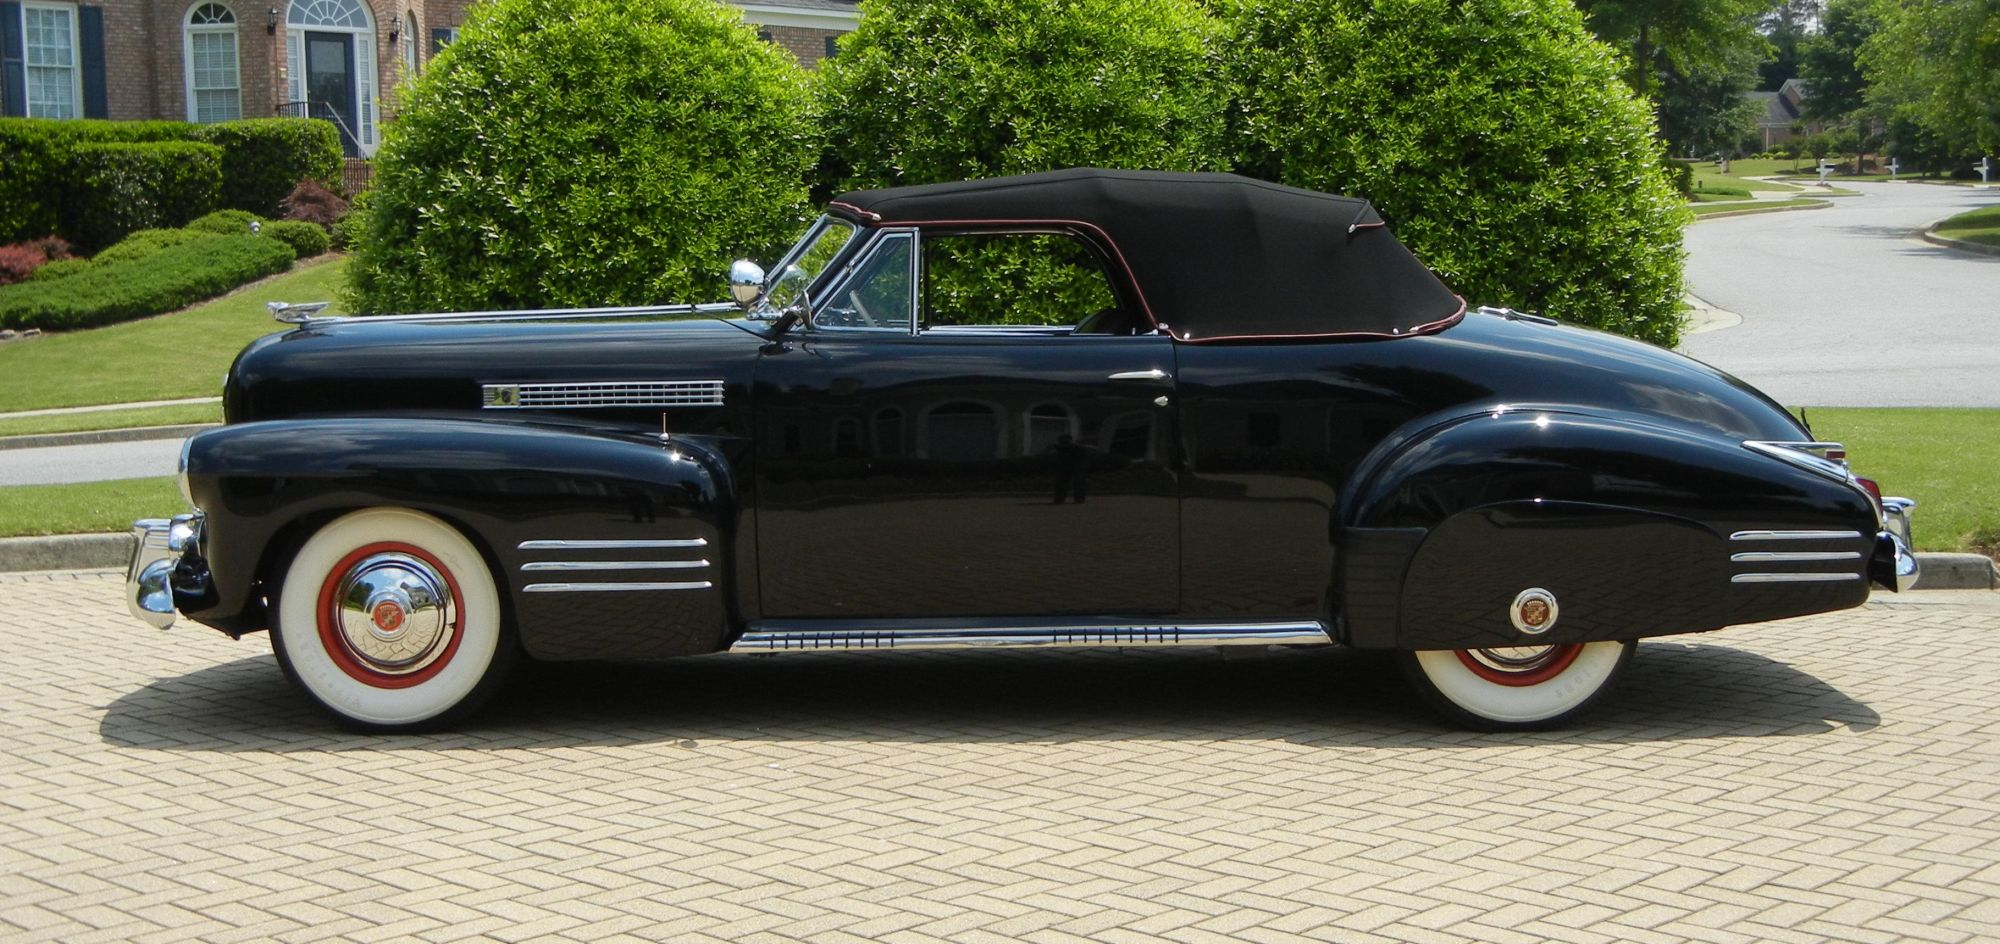 Re: For Sale, 1941 Cadillac Series 62 Convertible Coupe